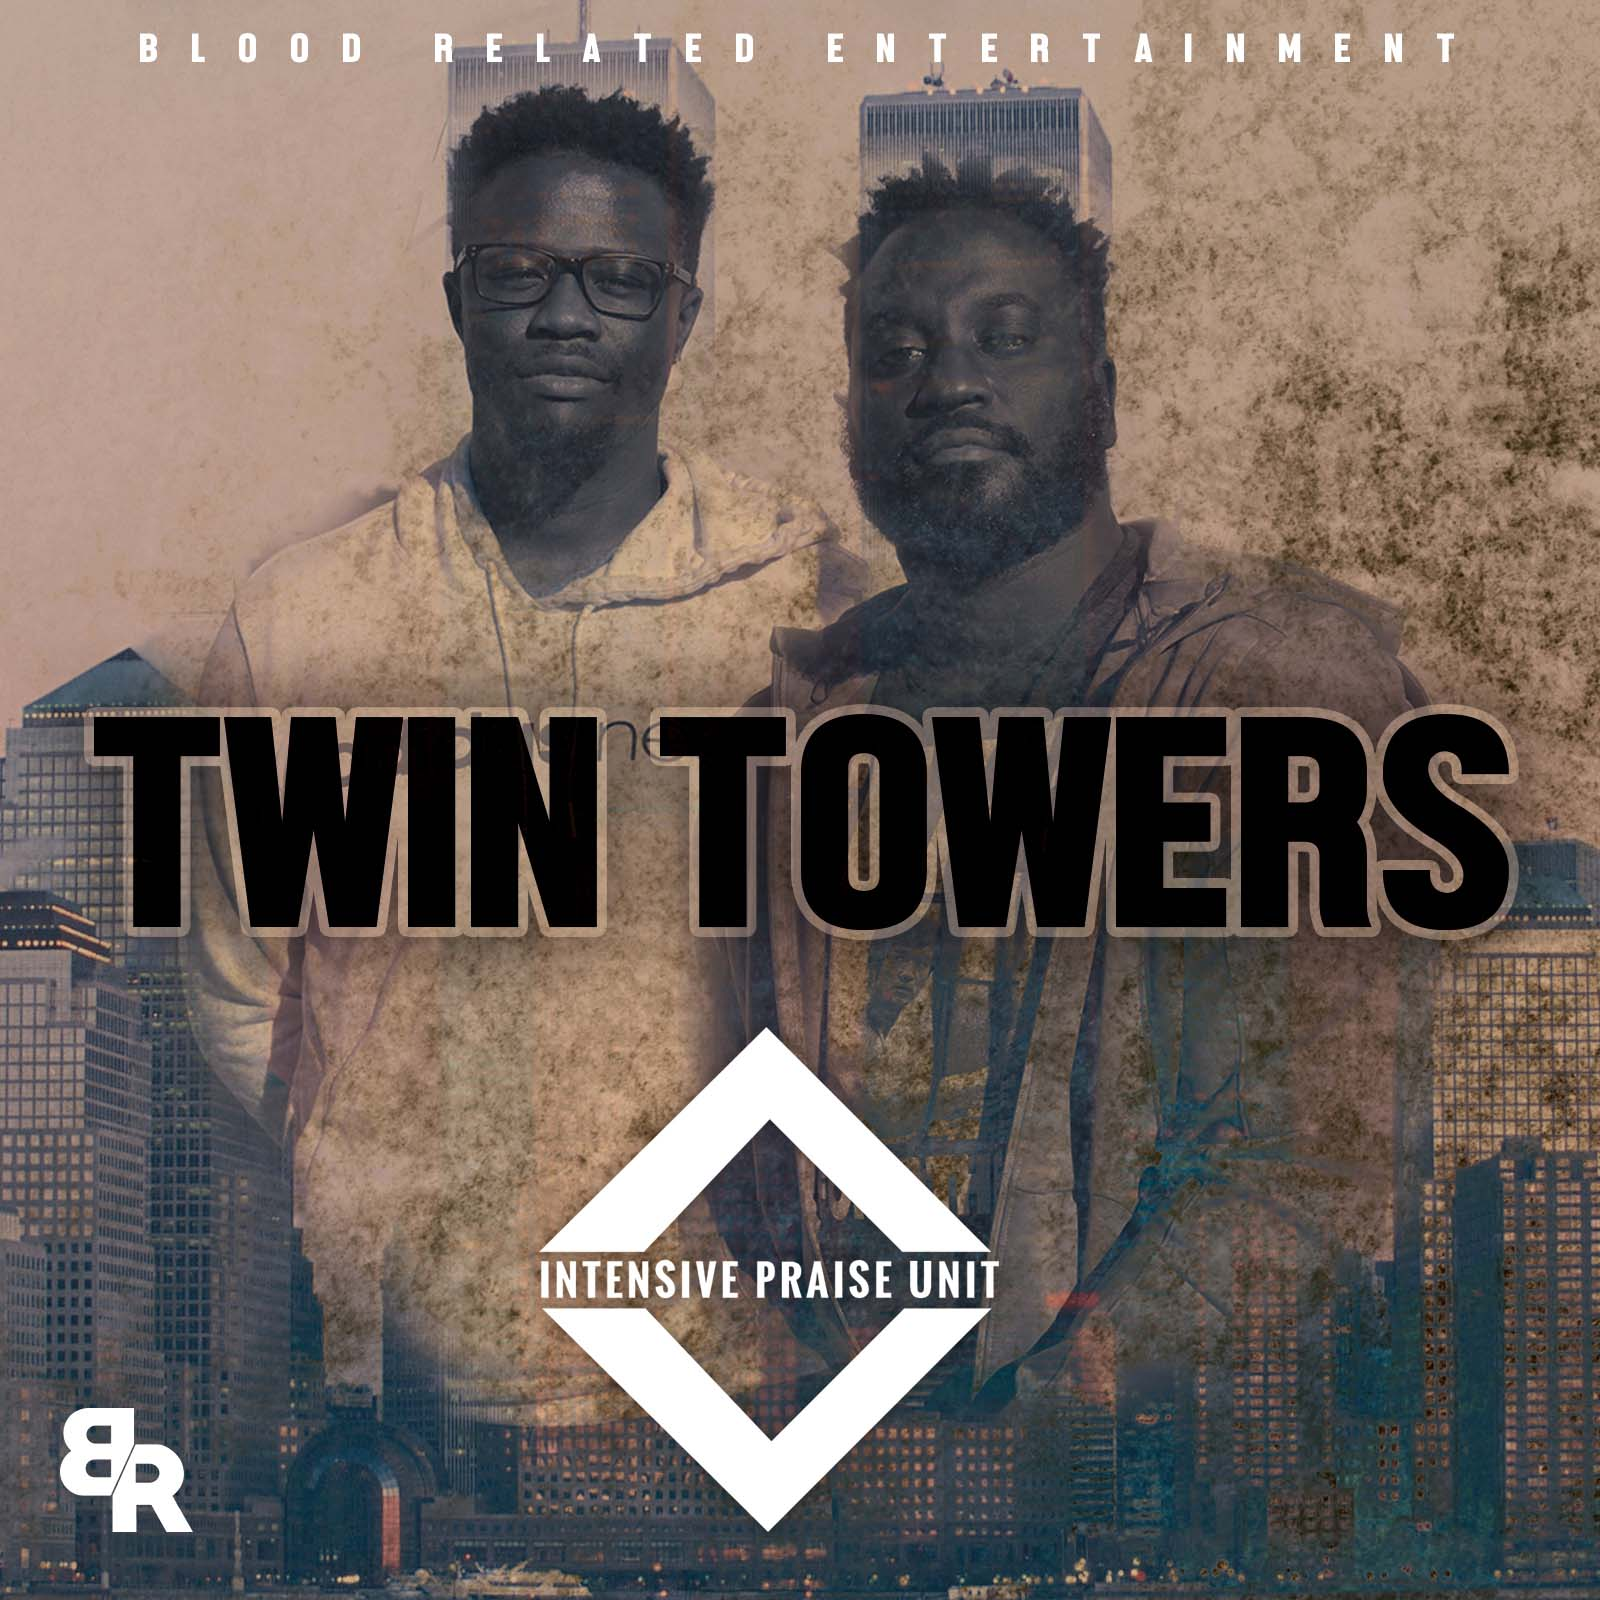 Twin Towers by Contemporary Artists Intensive Praise Unit